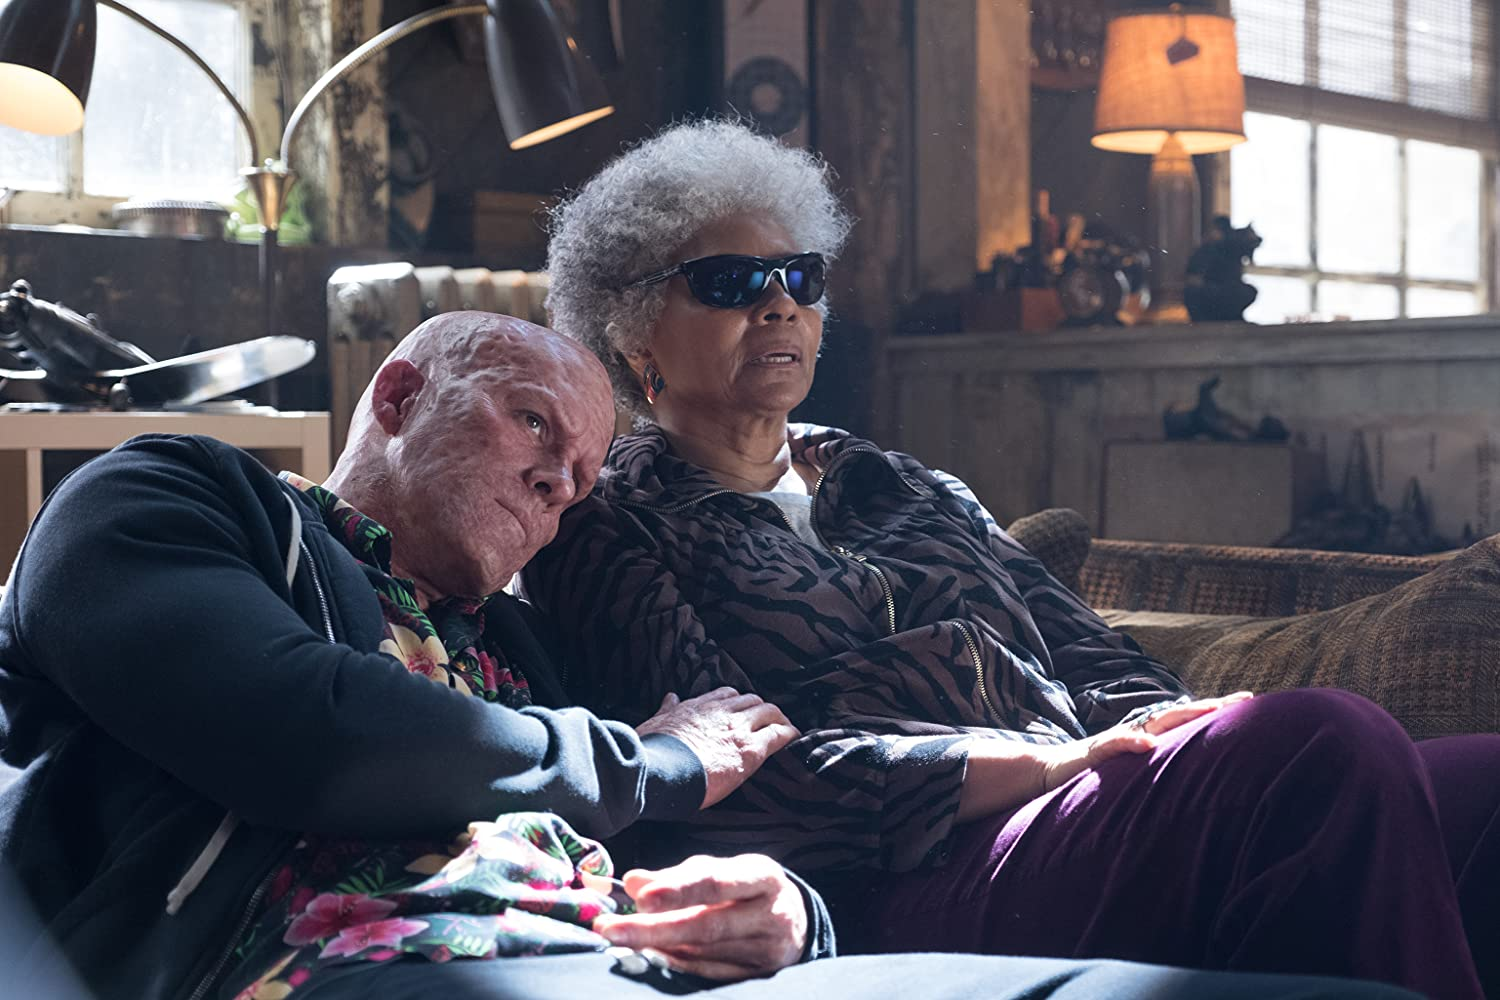 Ryan Reynolds and Leslie Uggams in Deadpool 2. Photo by Photo Credit: Joe Lederer - © TM & © 2018 Twentieth Century Fox Film Corporation. All Rights Reserved. Not for sale or duplication.